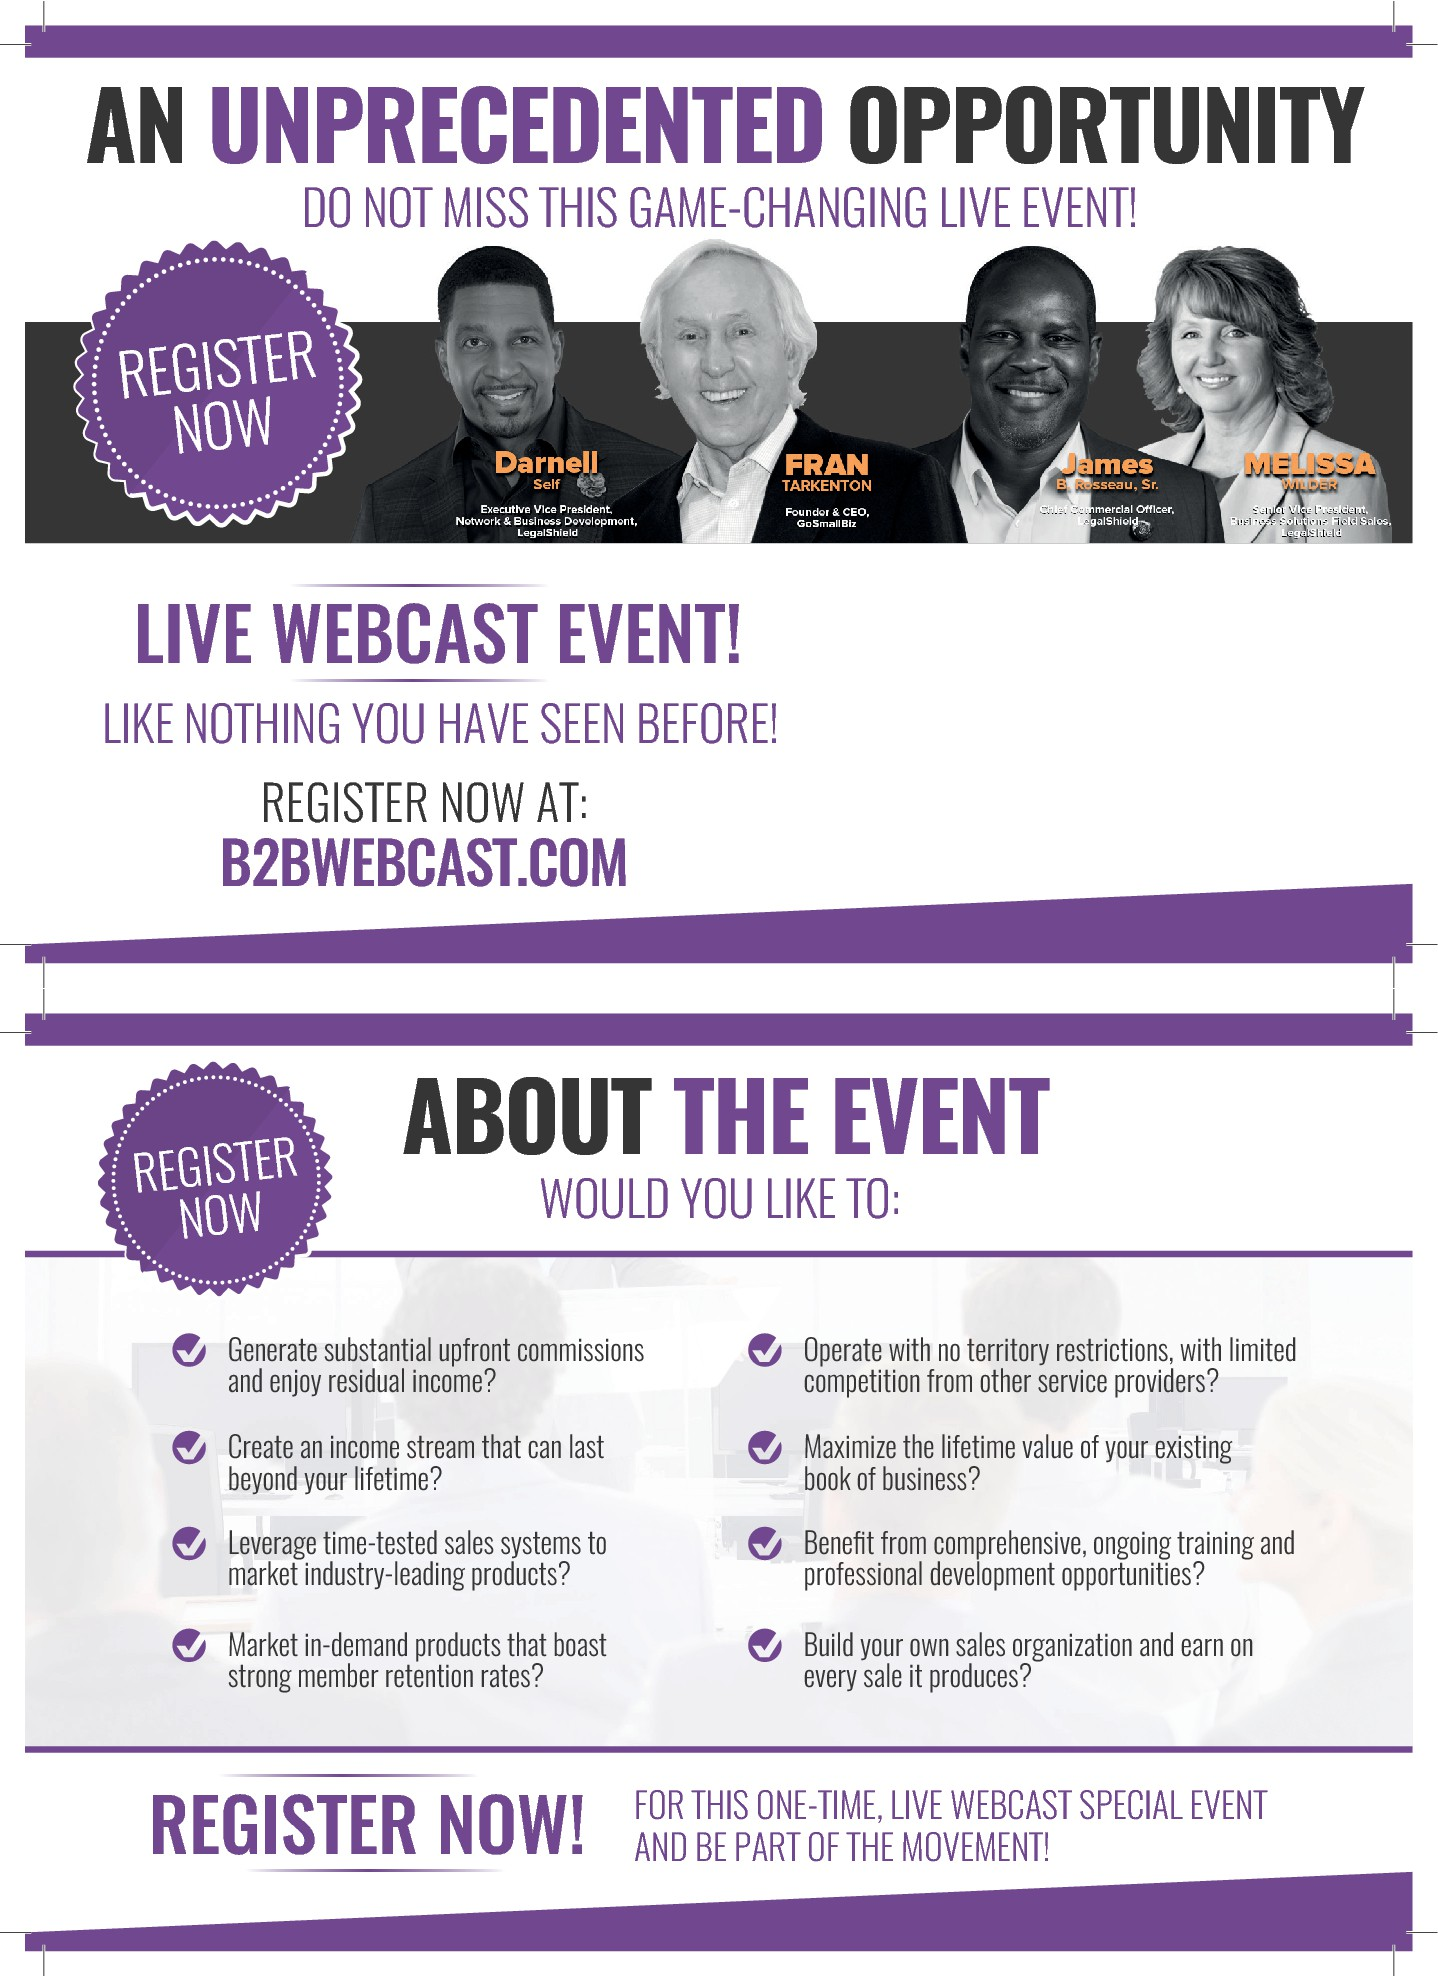 Attention-grabbing, excitement-generating postcard for a powerful live webcast event!